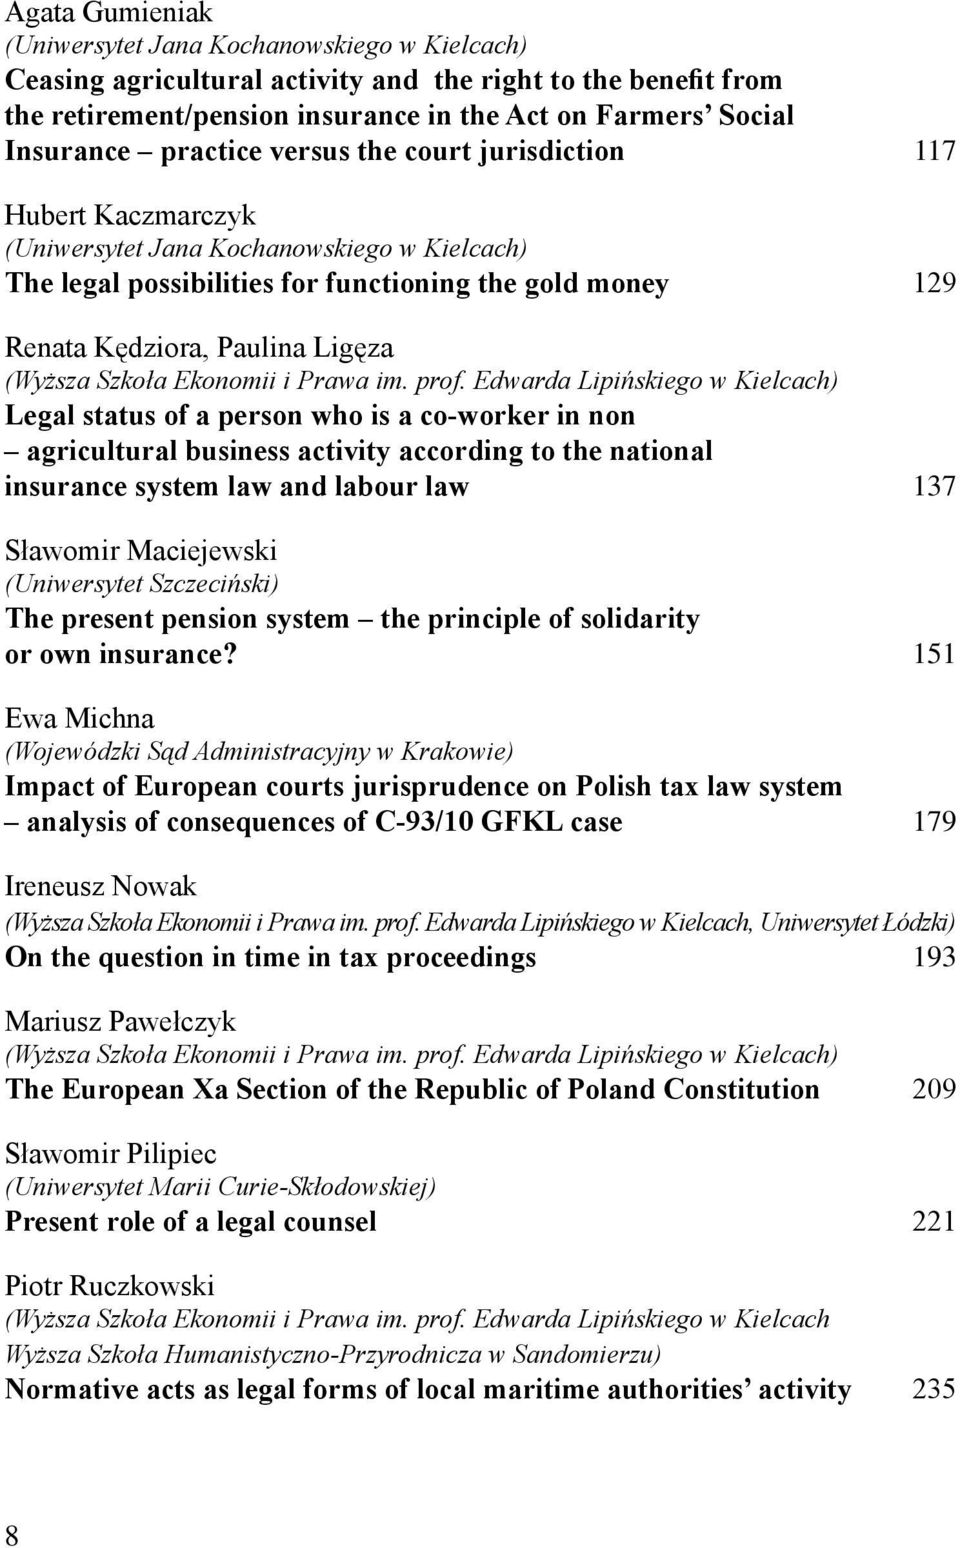 according to the national insurance system law and labour law 137 Sławomir Maciejewski (Uniwersytet Szczeciński) The present pension system the principle of solidarity or own insurance?